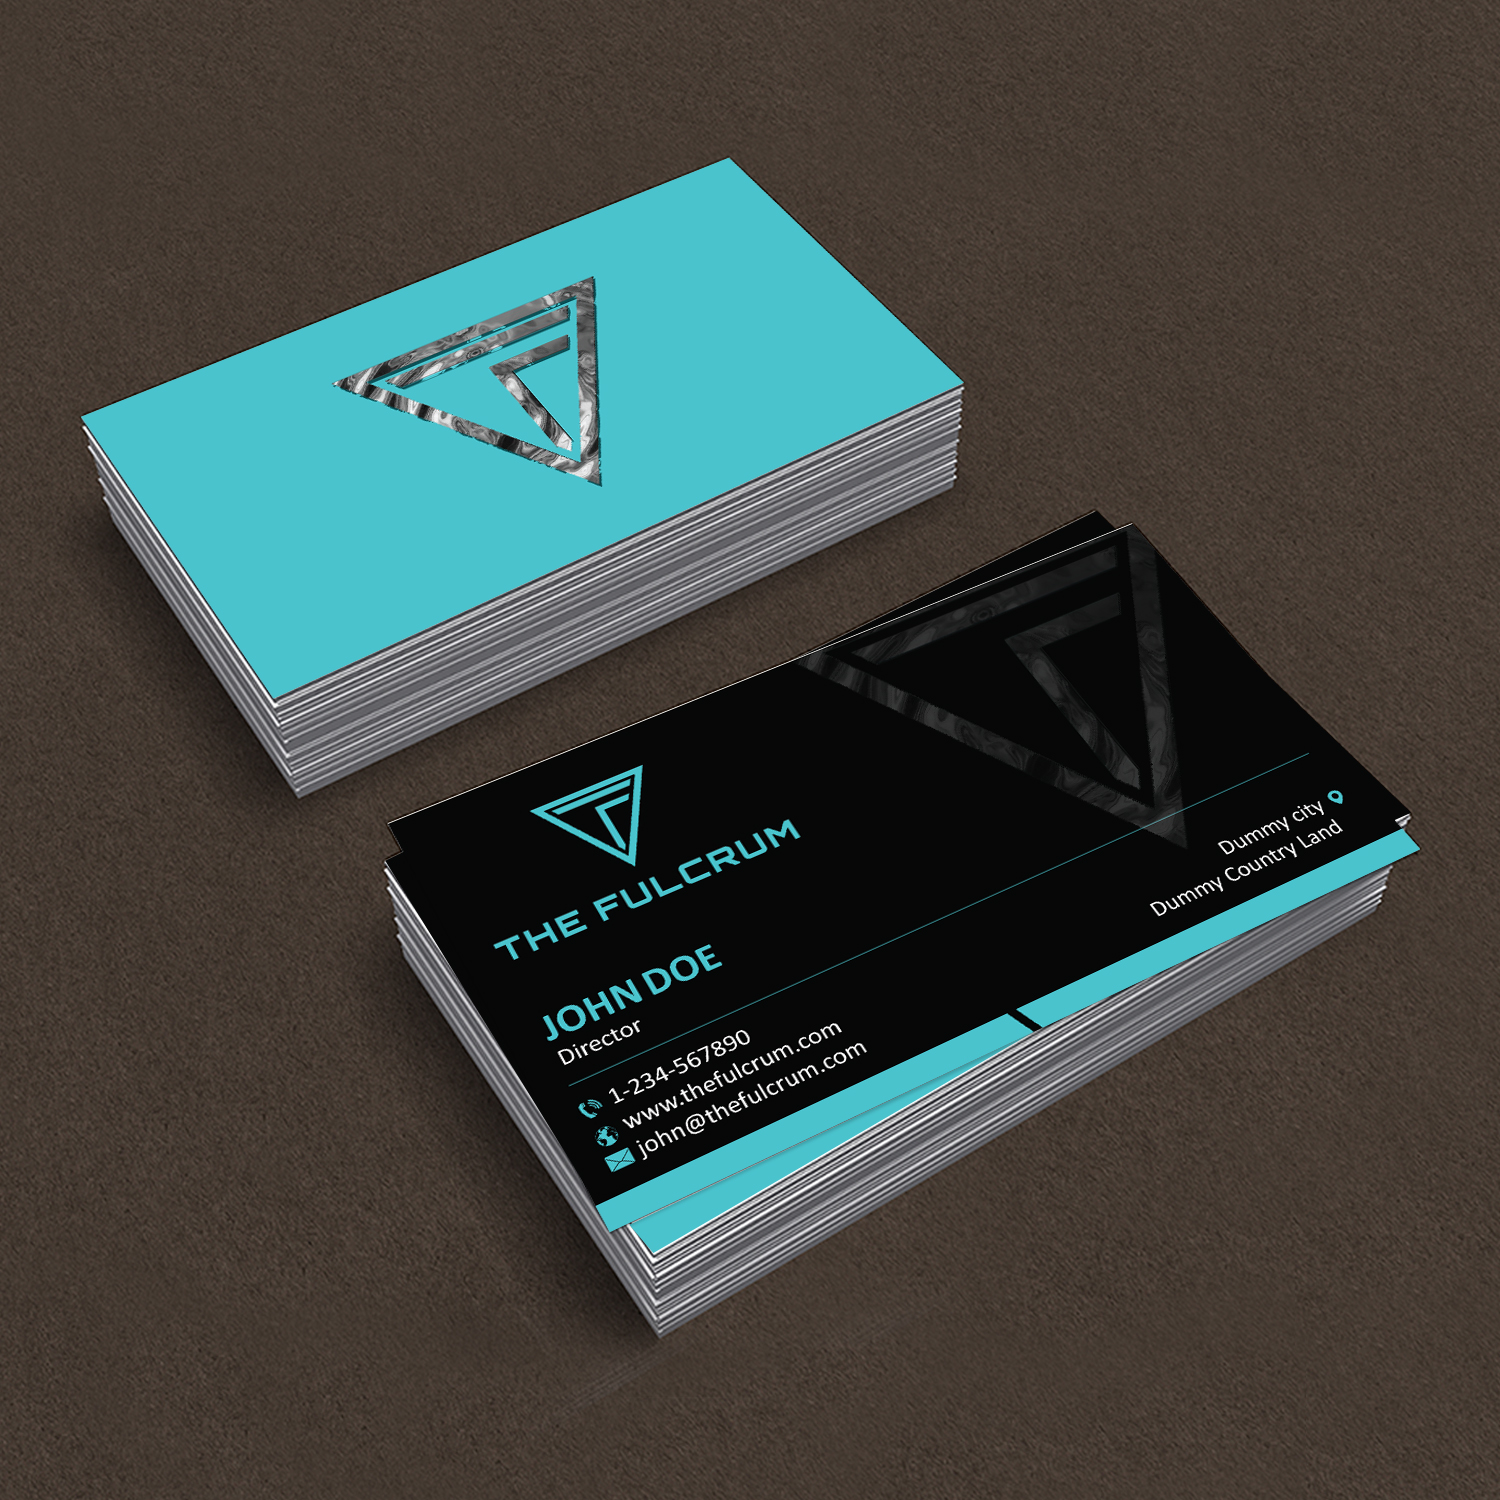 Bold modern business card design for infinity music group llc by business card design by creative jiniya for music festival business cards design 17097619 reheart Gallery